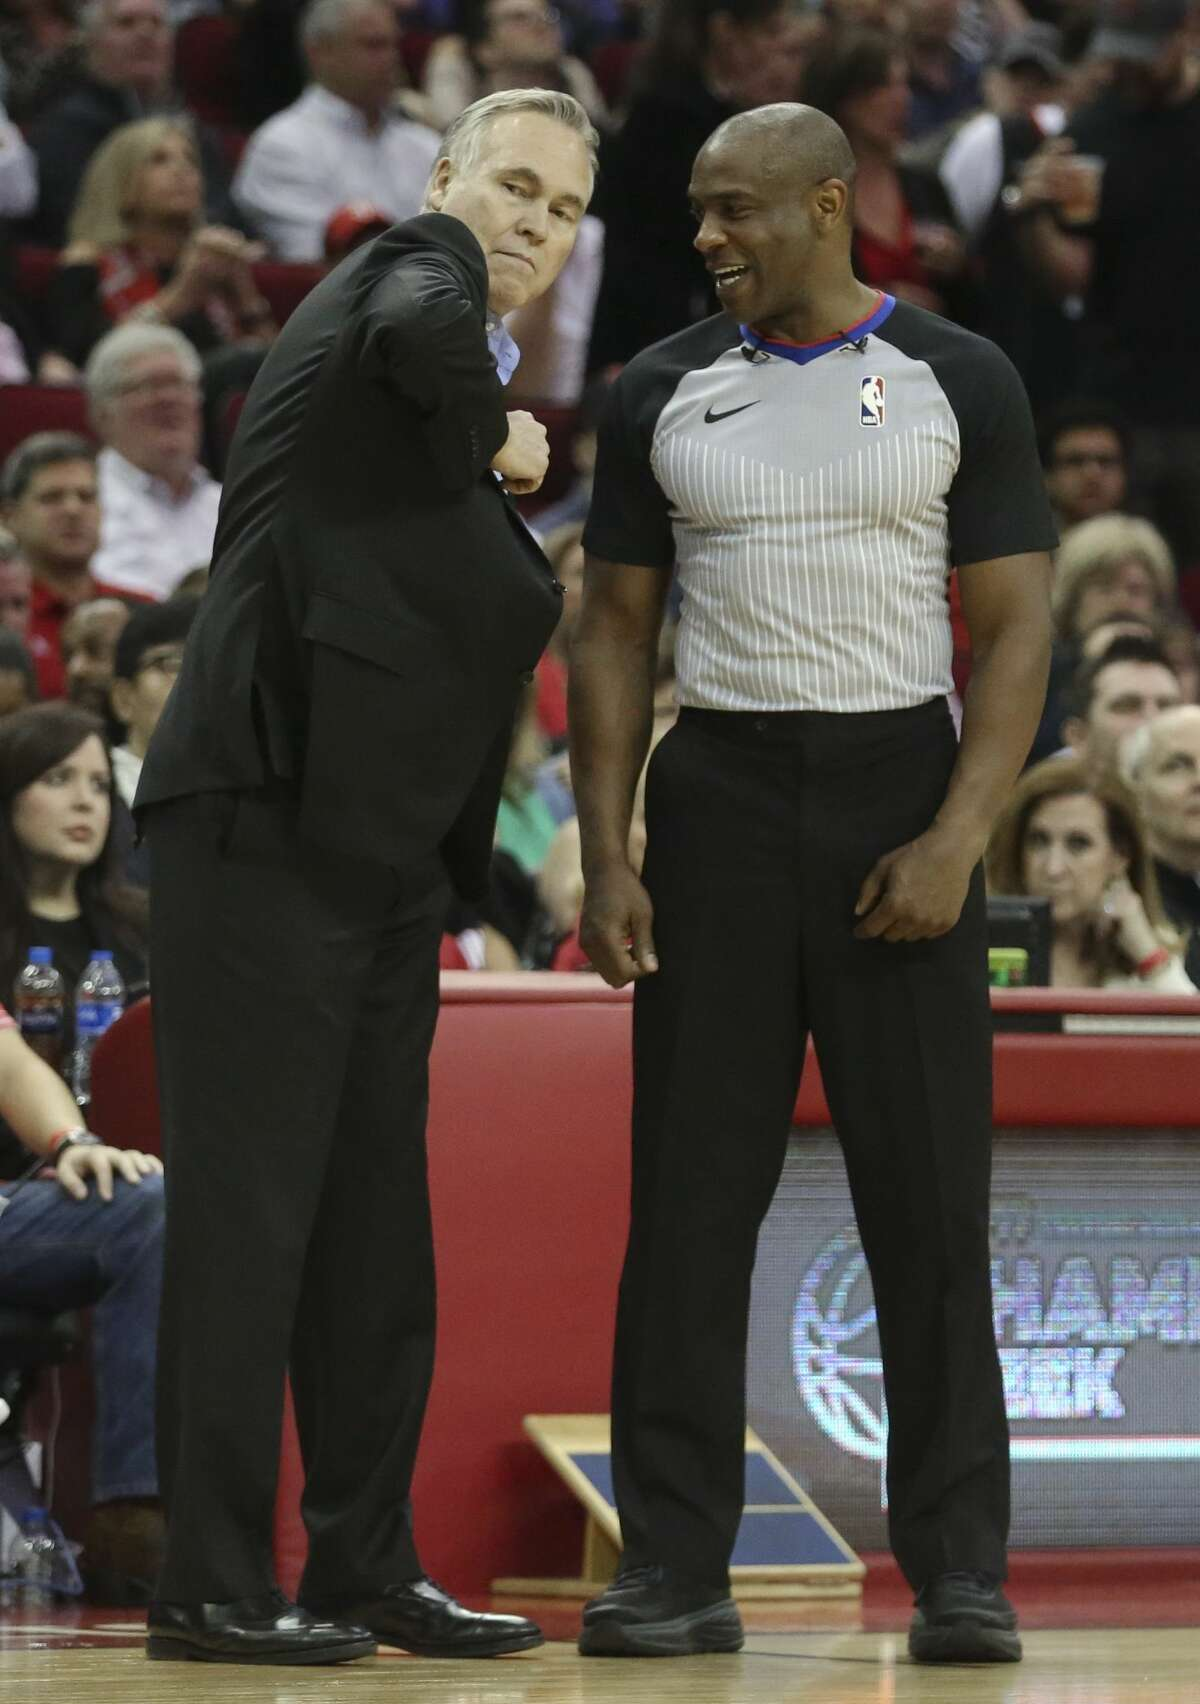 Houston Rockets head coach Mike D'Antoni argues a foul call against Chris Paul (3) with referee Tony Brown during the second quarter of a NBA game at the Toyota Center on Saturday, March 3, 2018, in Houston. ( Yi-Chin Lee / Houston Chronicle )